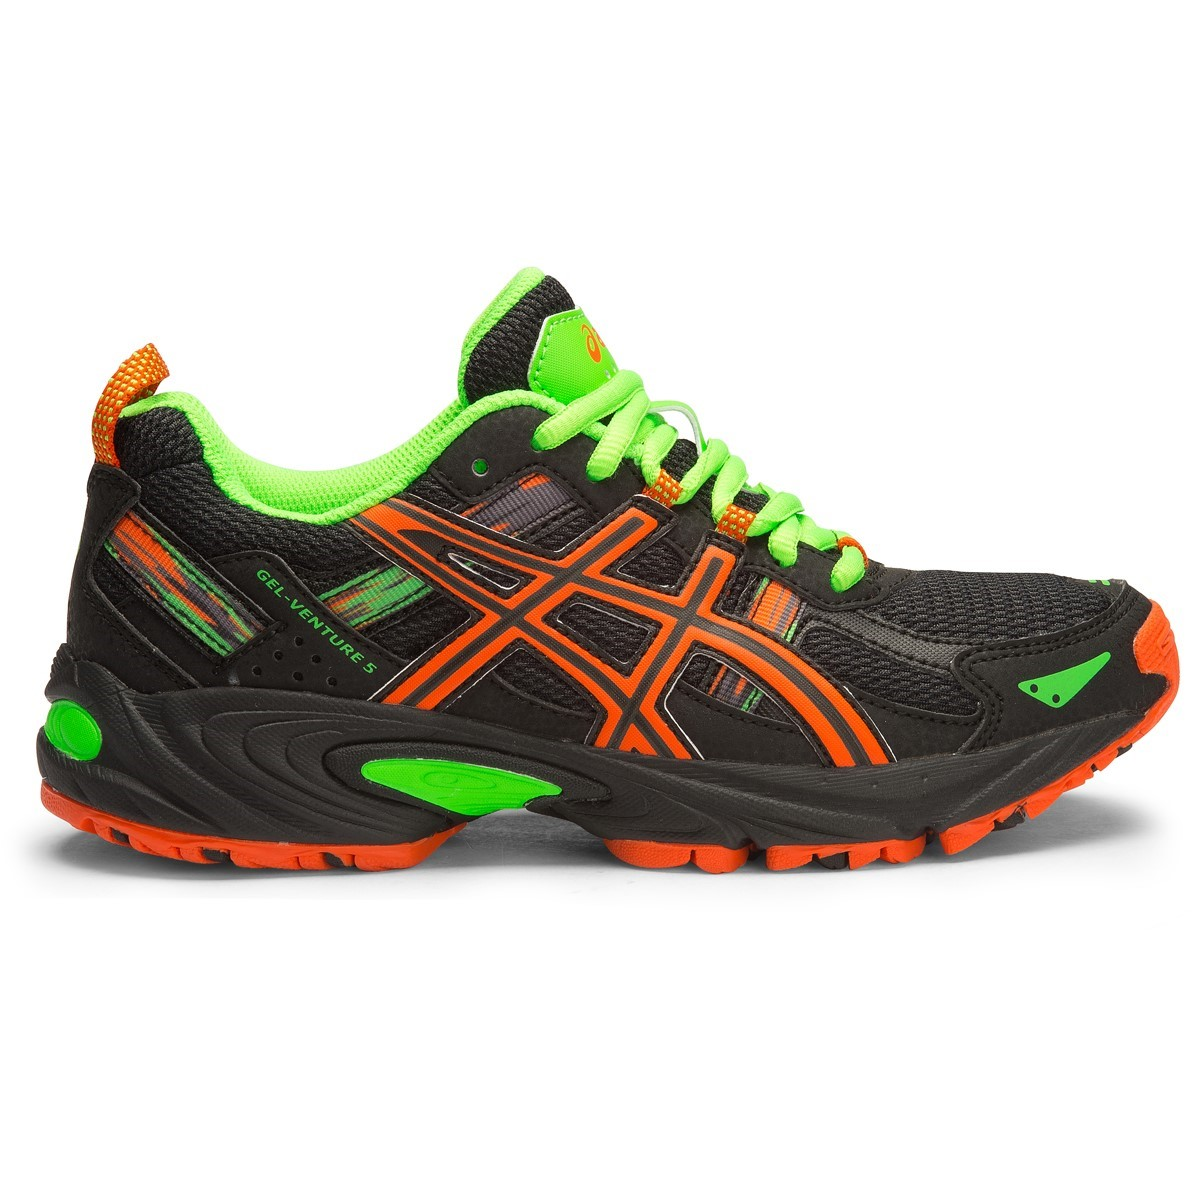 Asics Gel Venture 5 GS - Kids Boys Trail Running Shoes - Black/Flame Orange